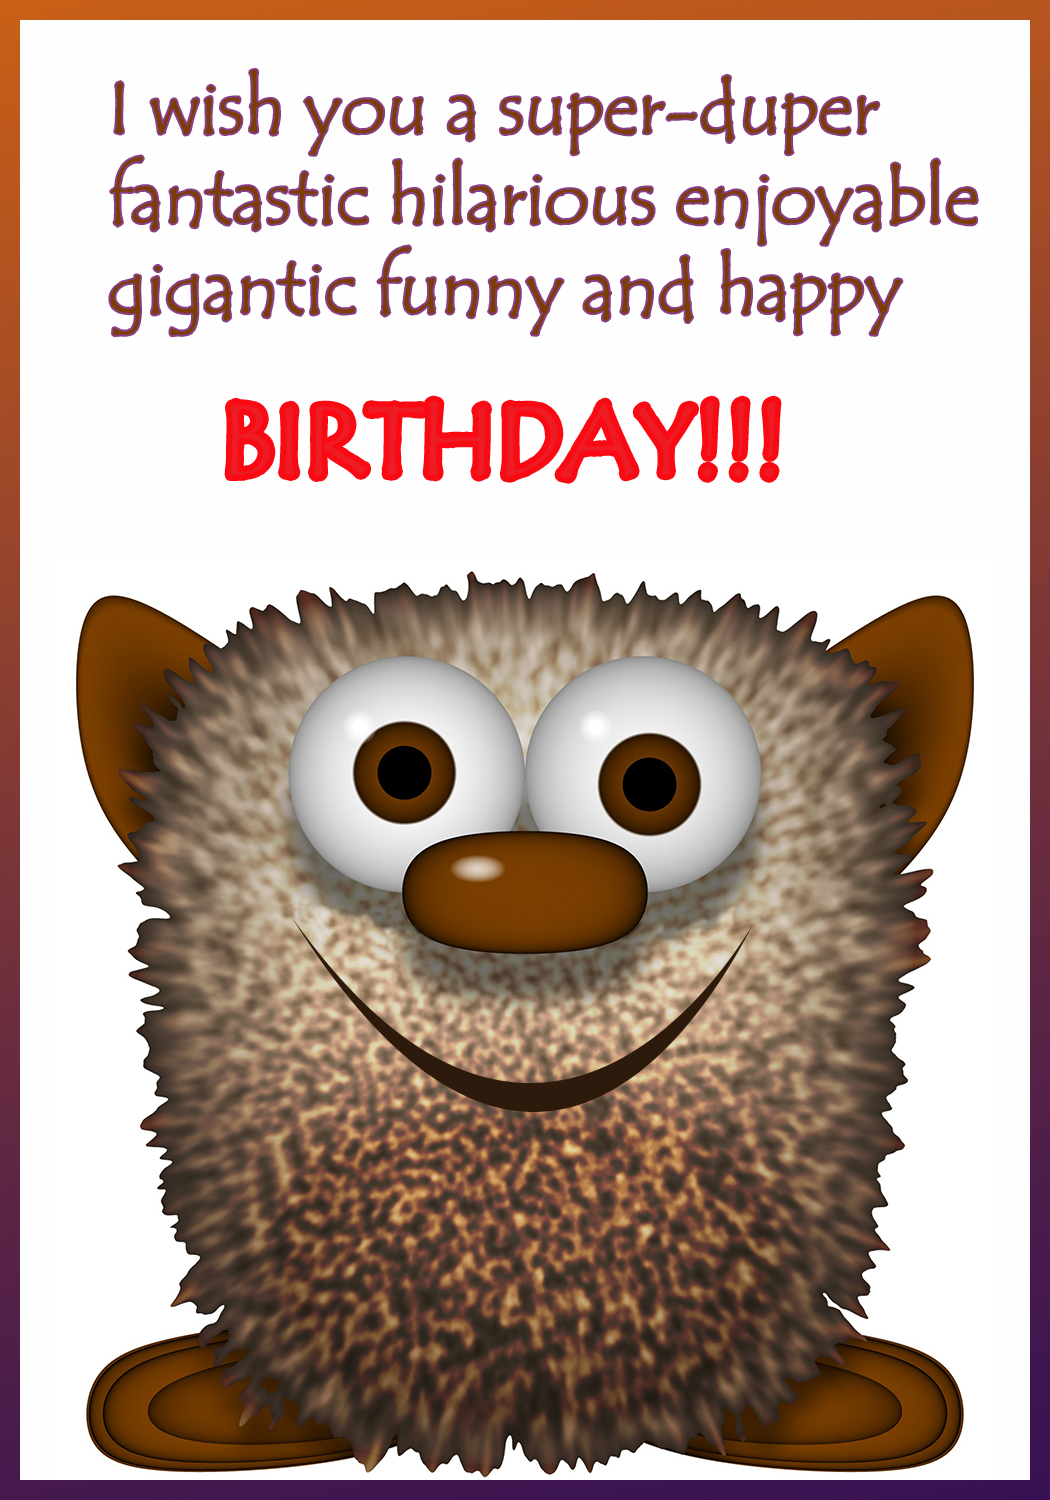 birthday greeting funny images ; funny-monster-birthday-greeting-card